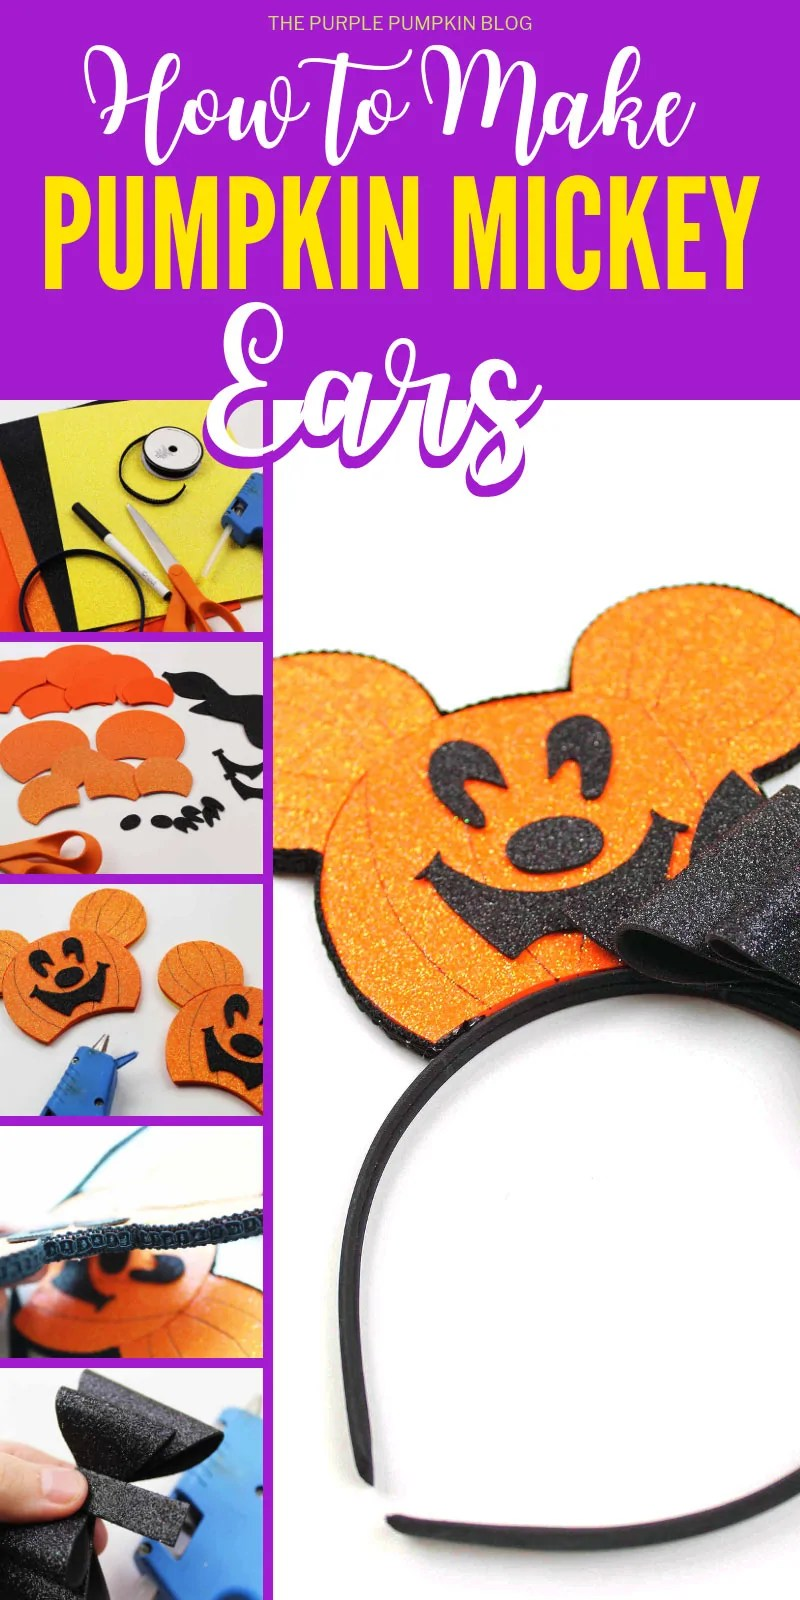 Collage of images showing how to make Pumpkin Mickey Ears